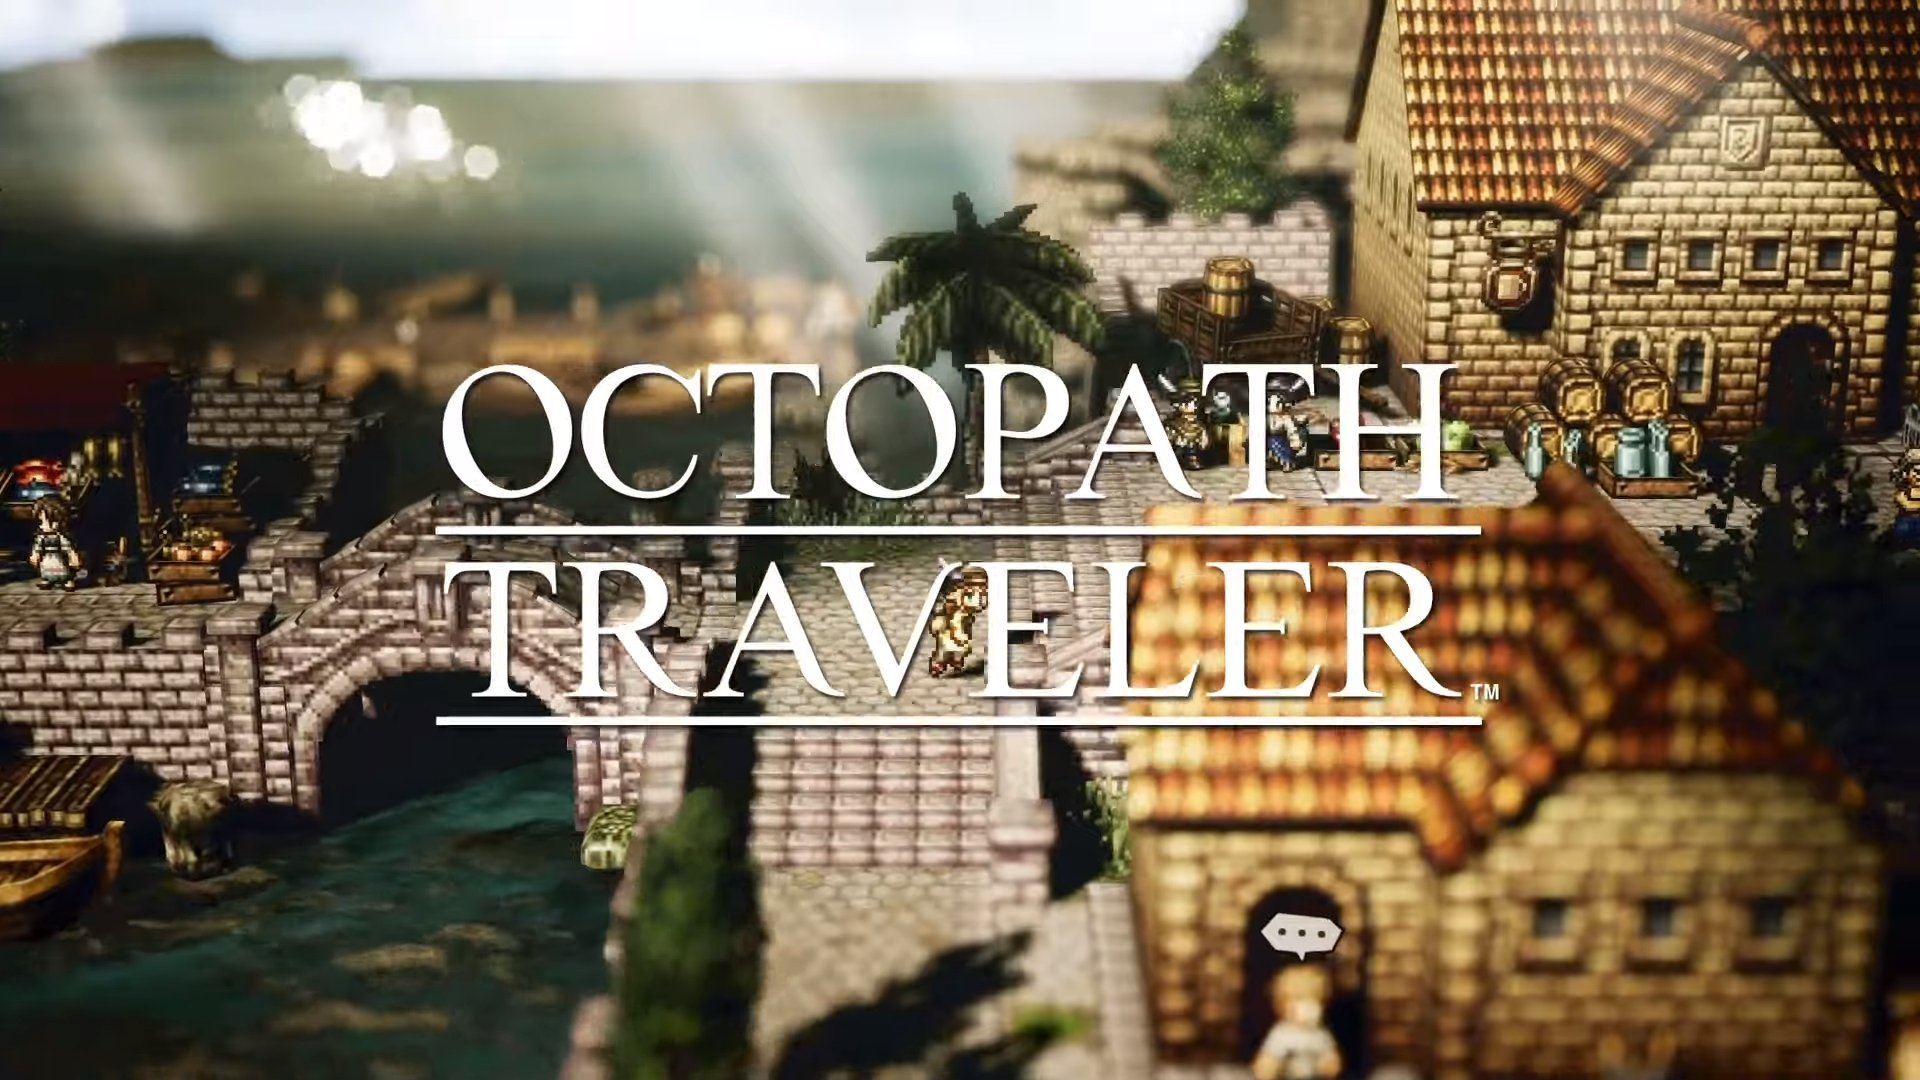 Octopath Traveler Headed to PC in June Header Image